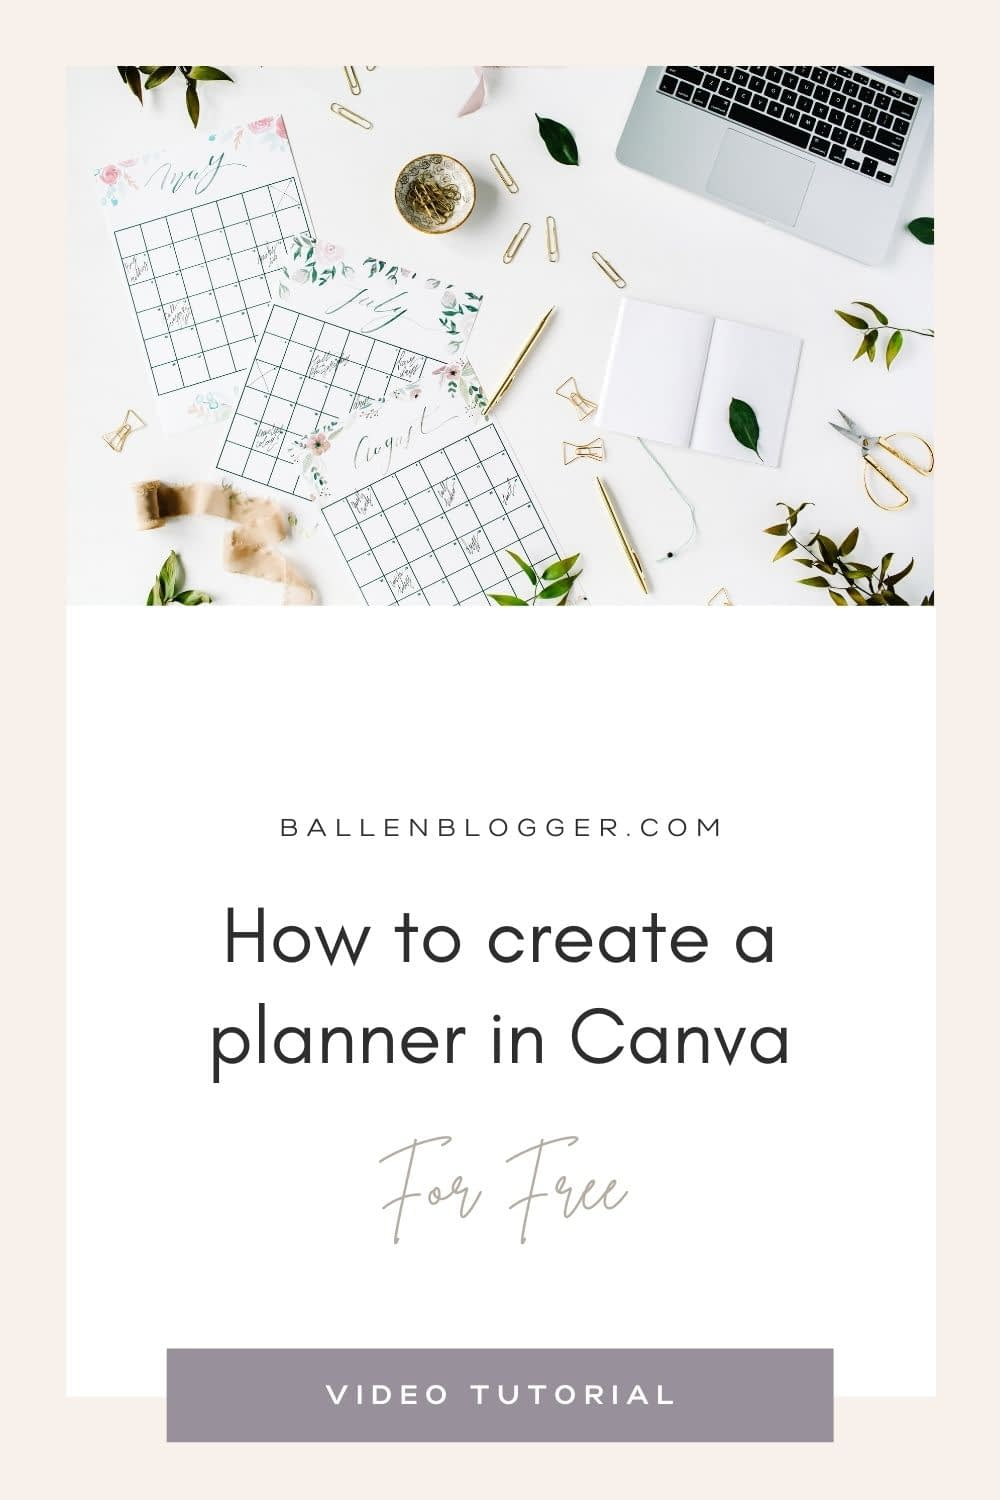 I enjoyed this video on how to create a planner in Canva. As a courtesy, I'm also including links to planner pages you can grab at Canva if you don't want to build your own. I use Canva Pro so I can remove the background of images, use pro images and videos, set up my brand kit, and work with a 5-member team.